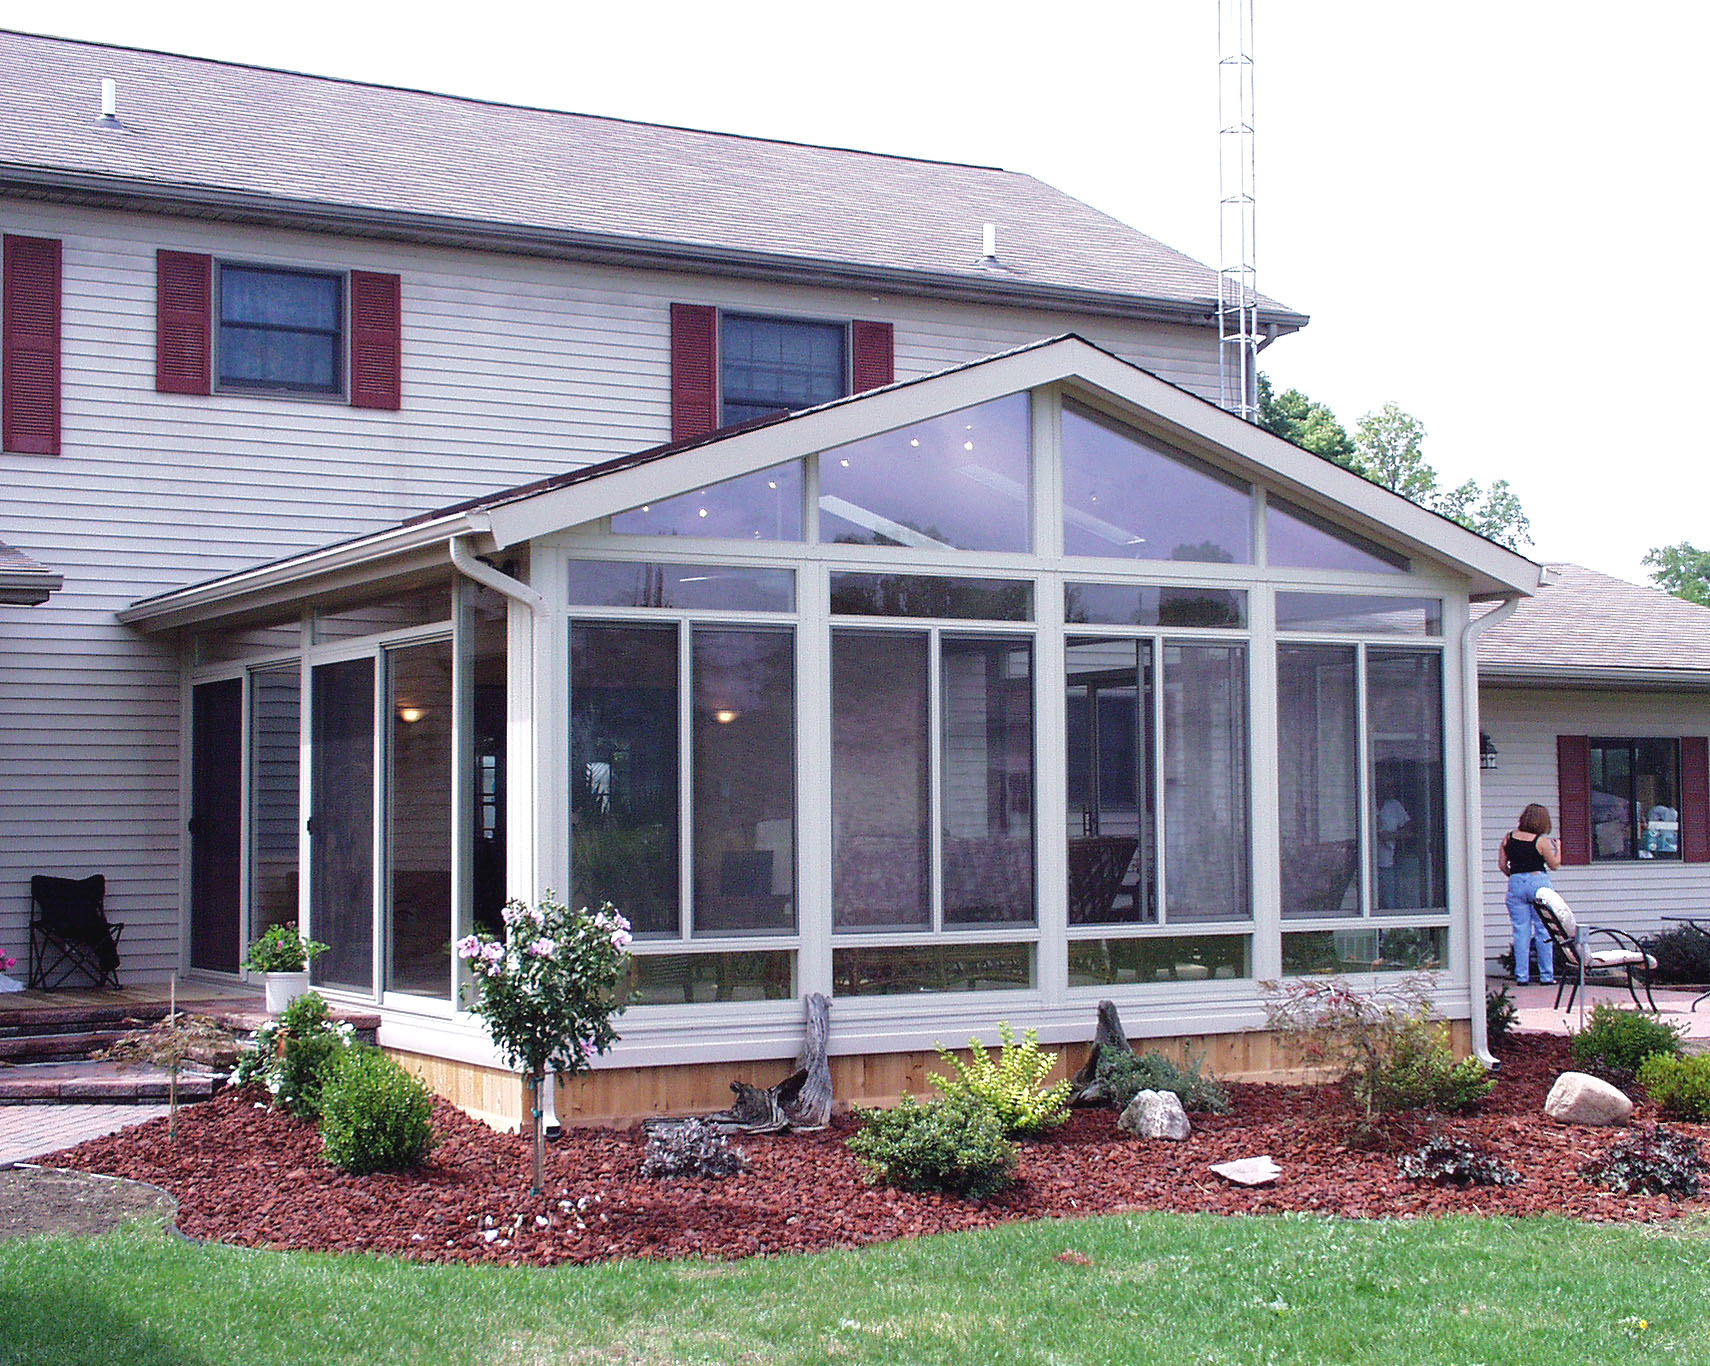 Eagle Windows Doors And Four Season Sun Rooms Action: 4 season solarium